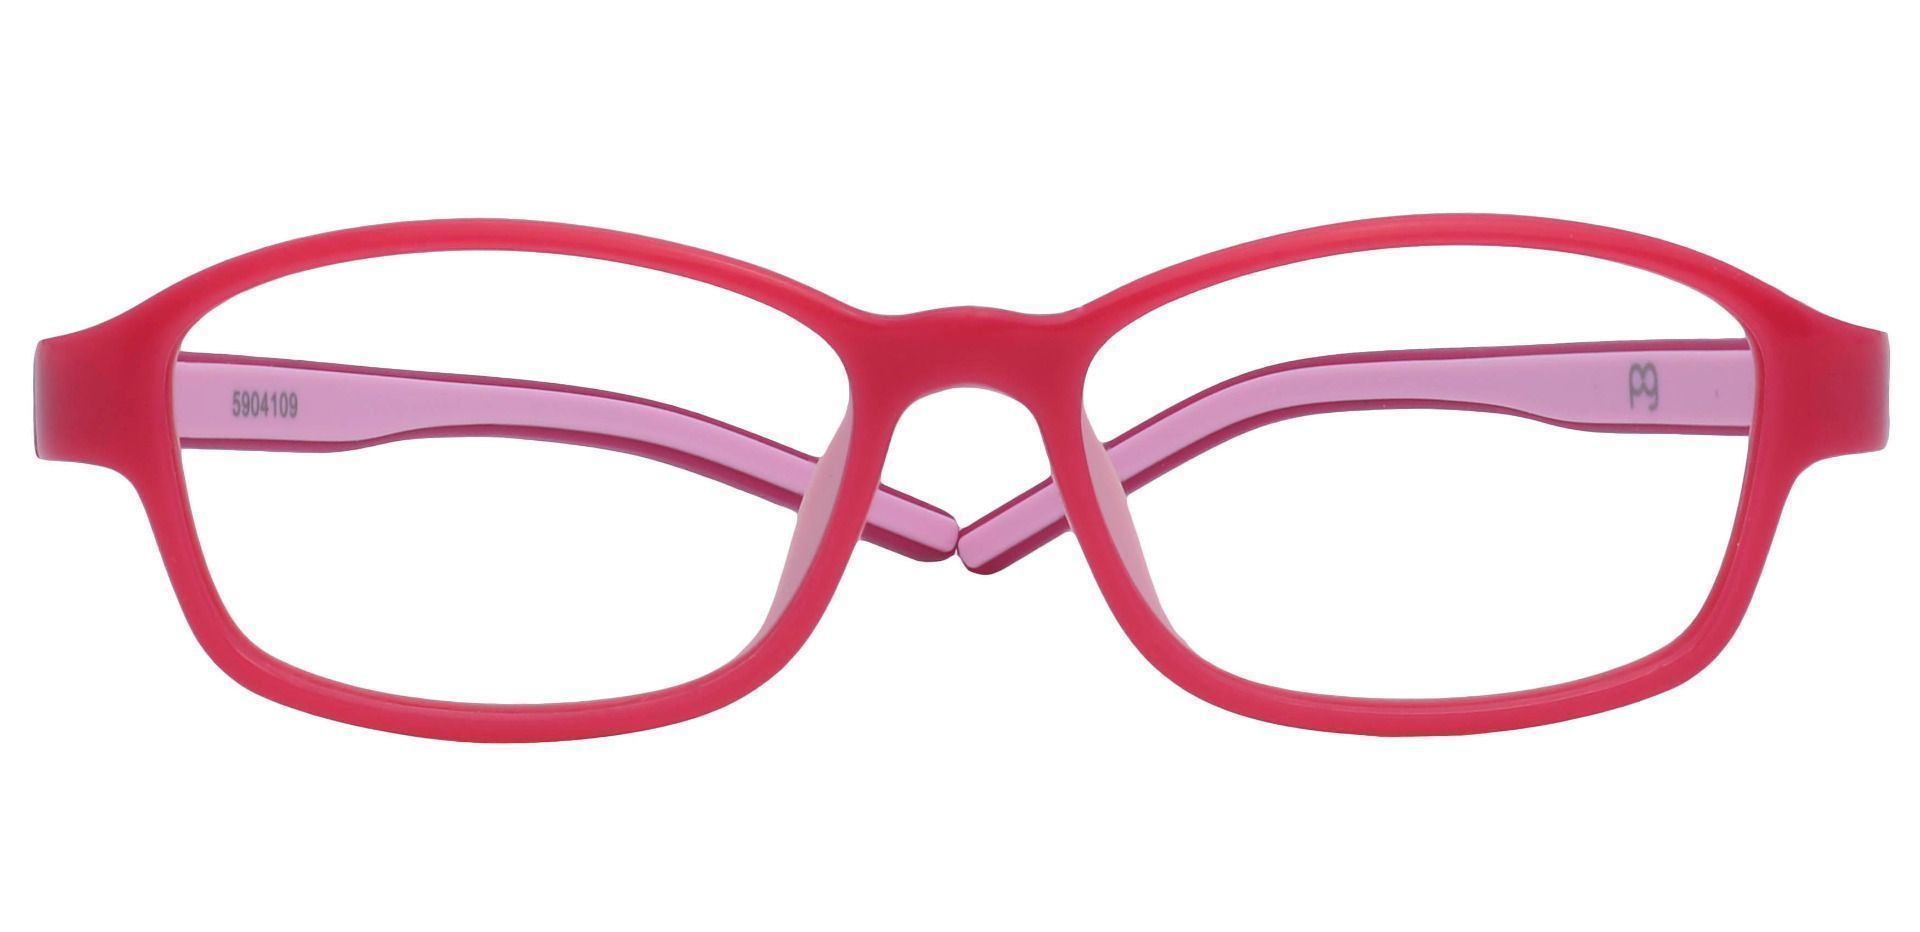 Berry Oval Prescription Glasses - Pink